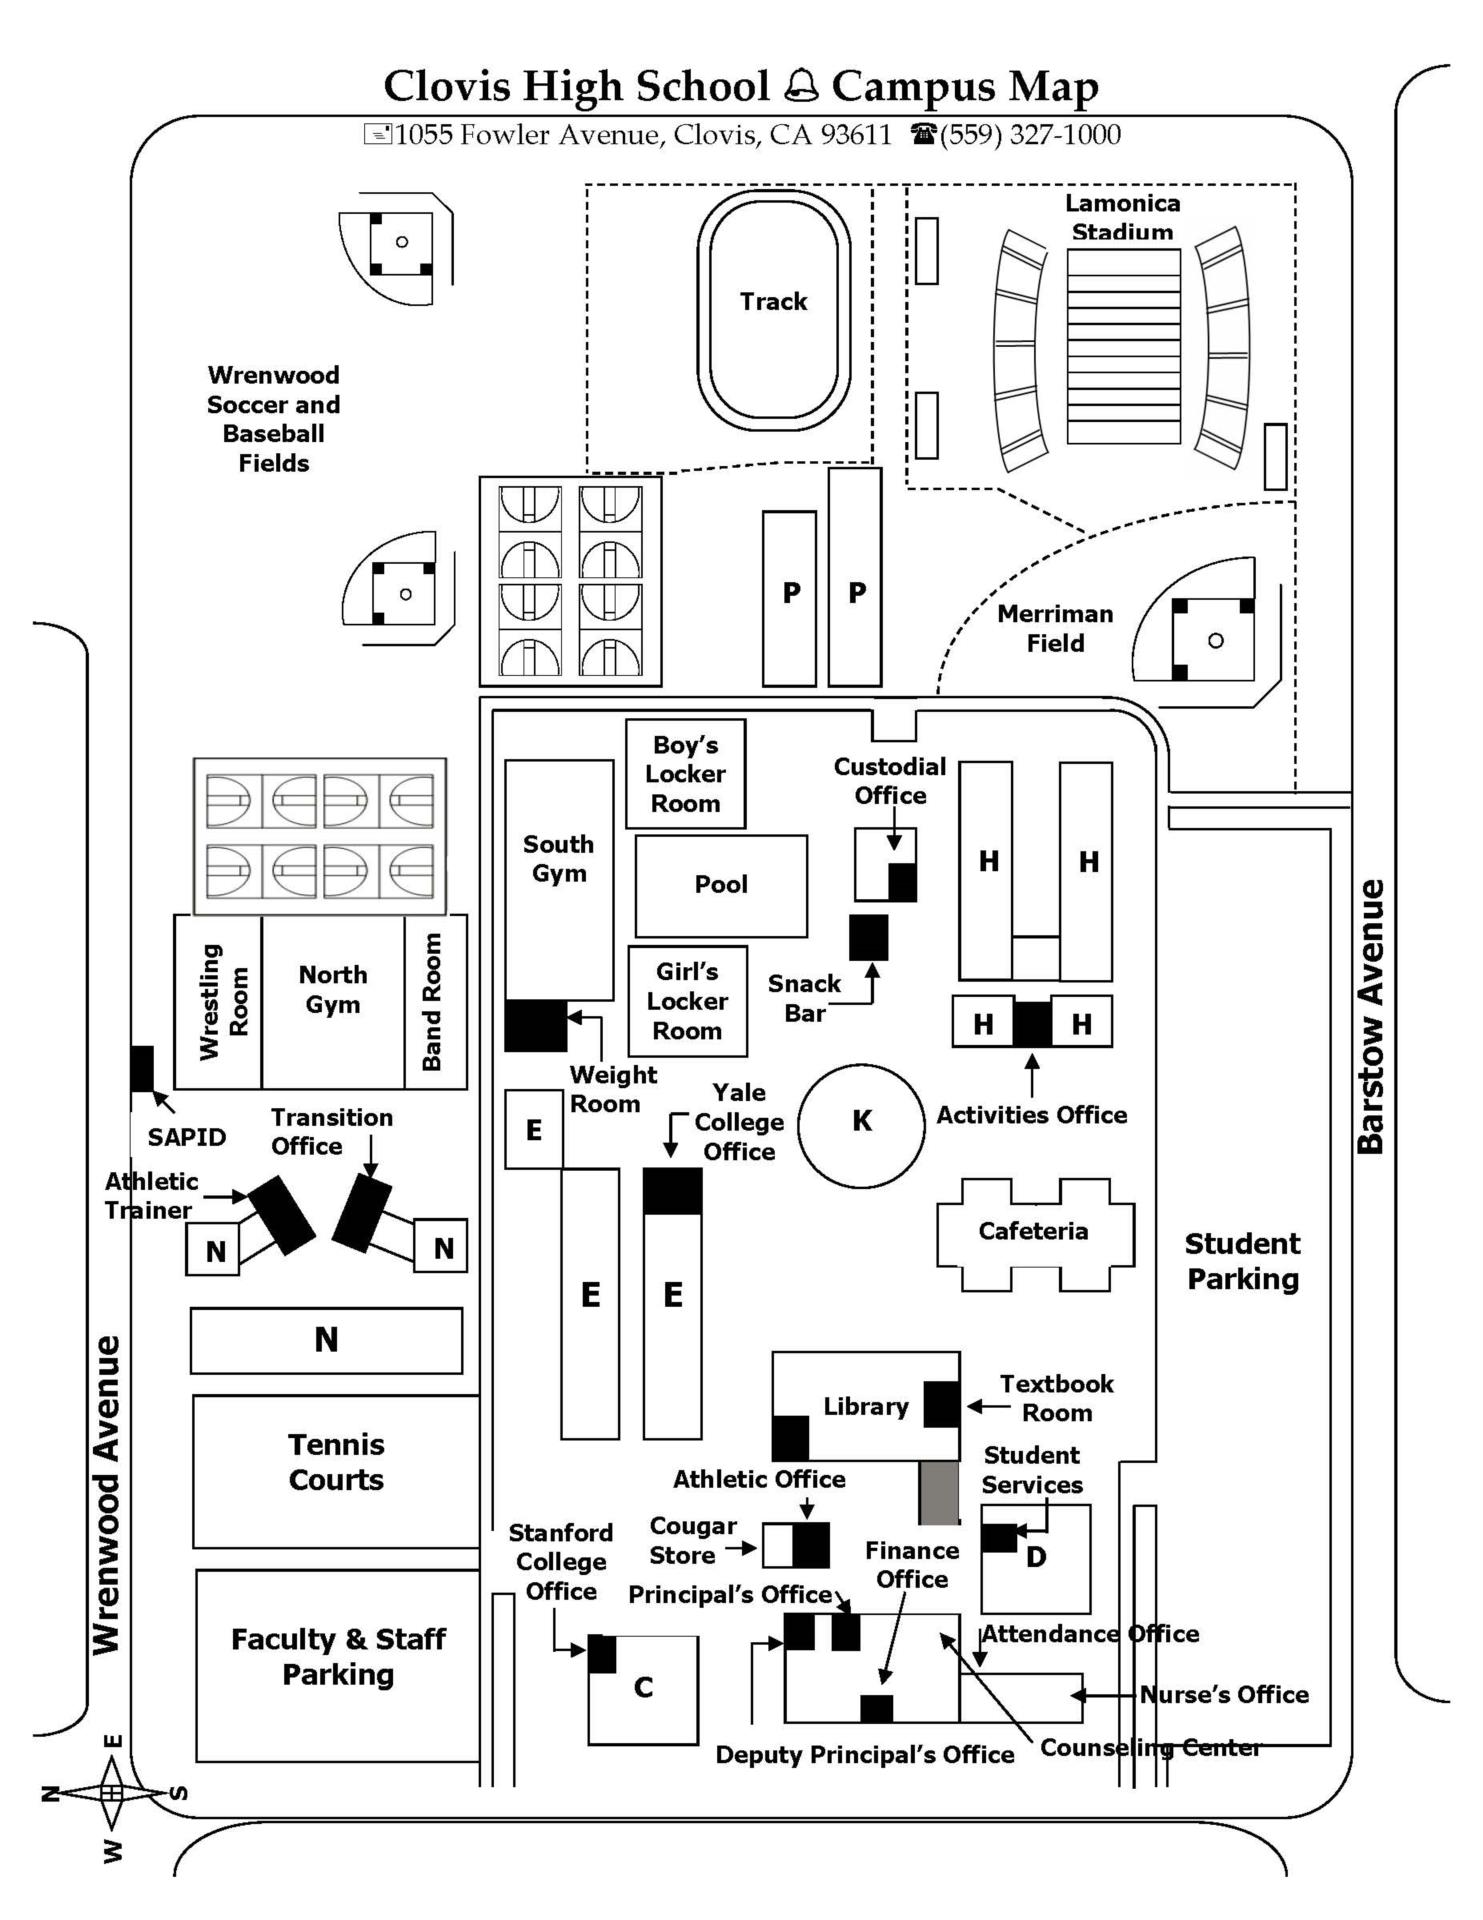 Map of CHS Campus